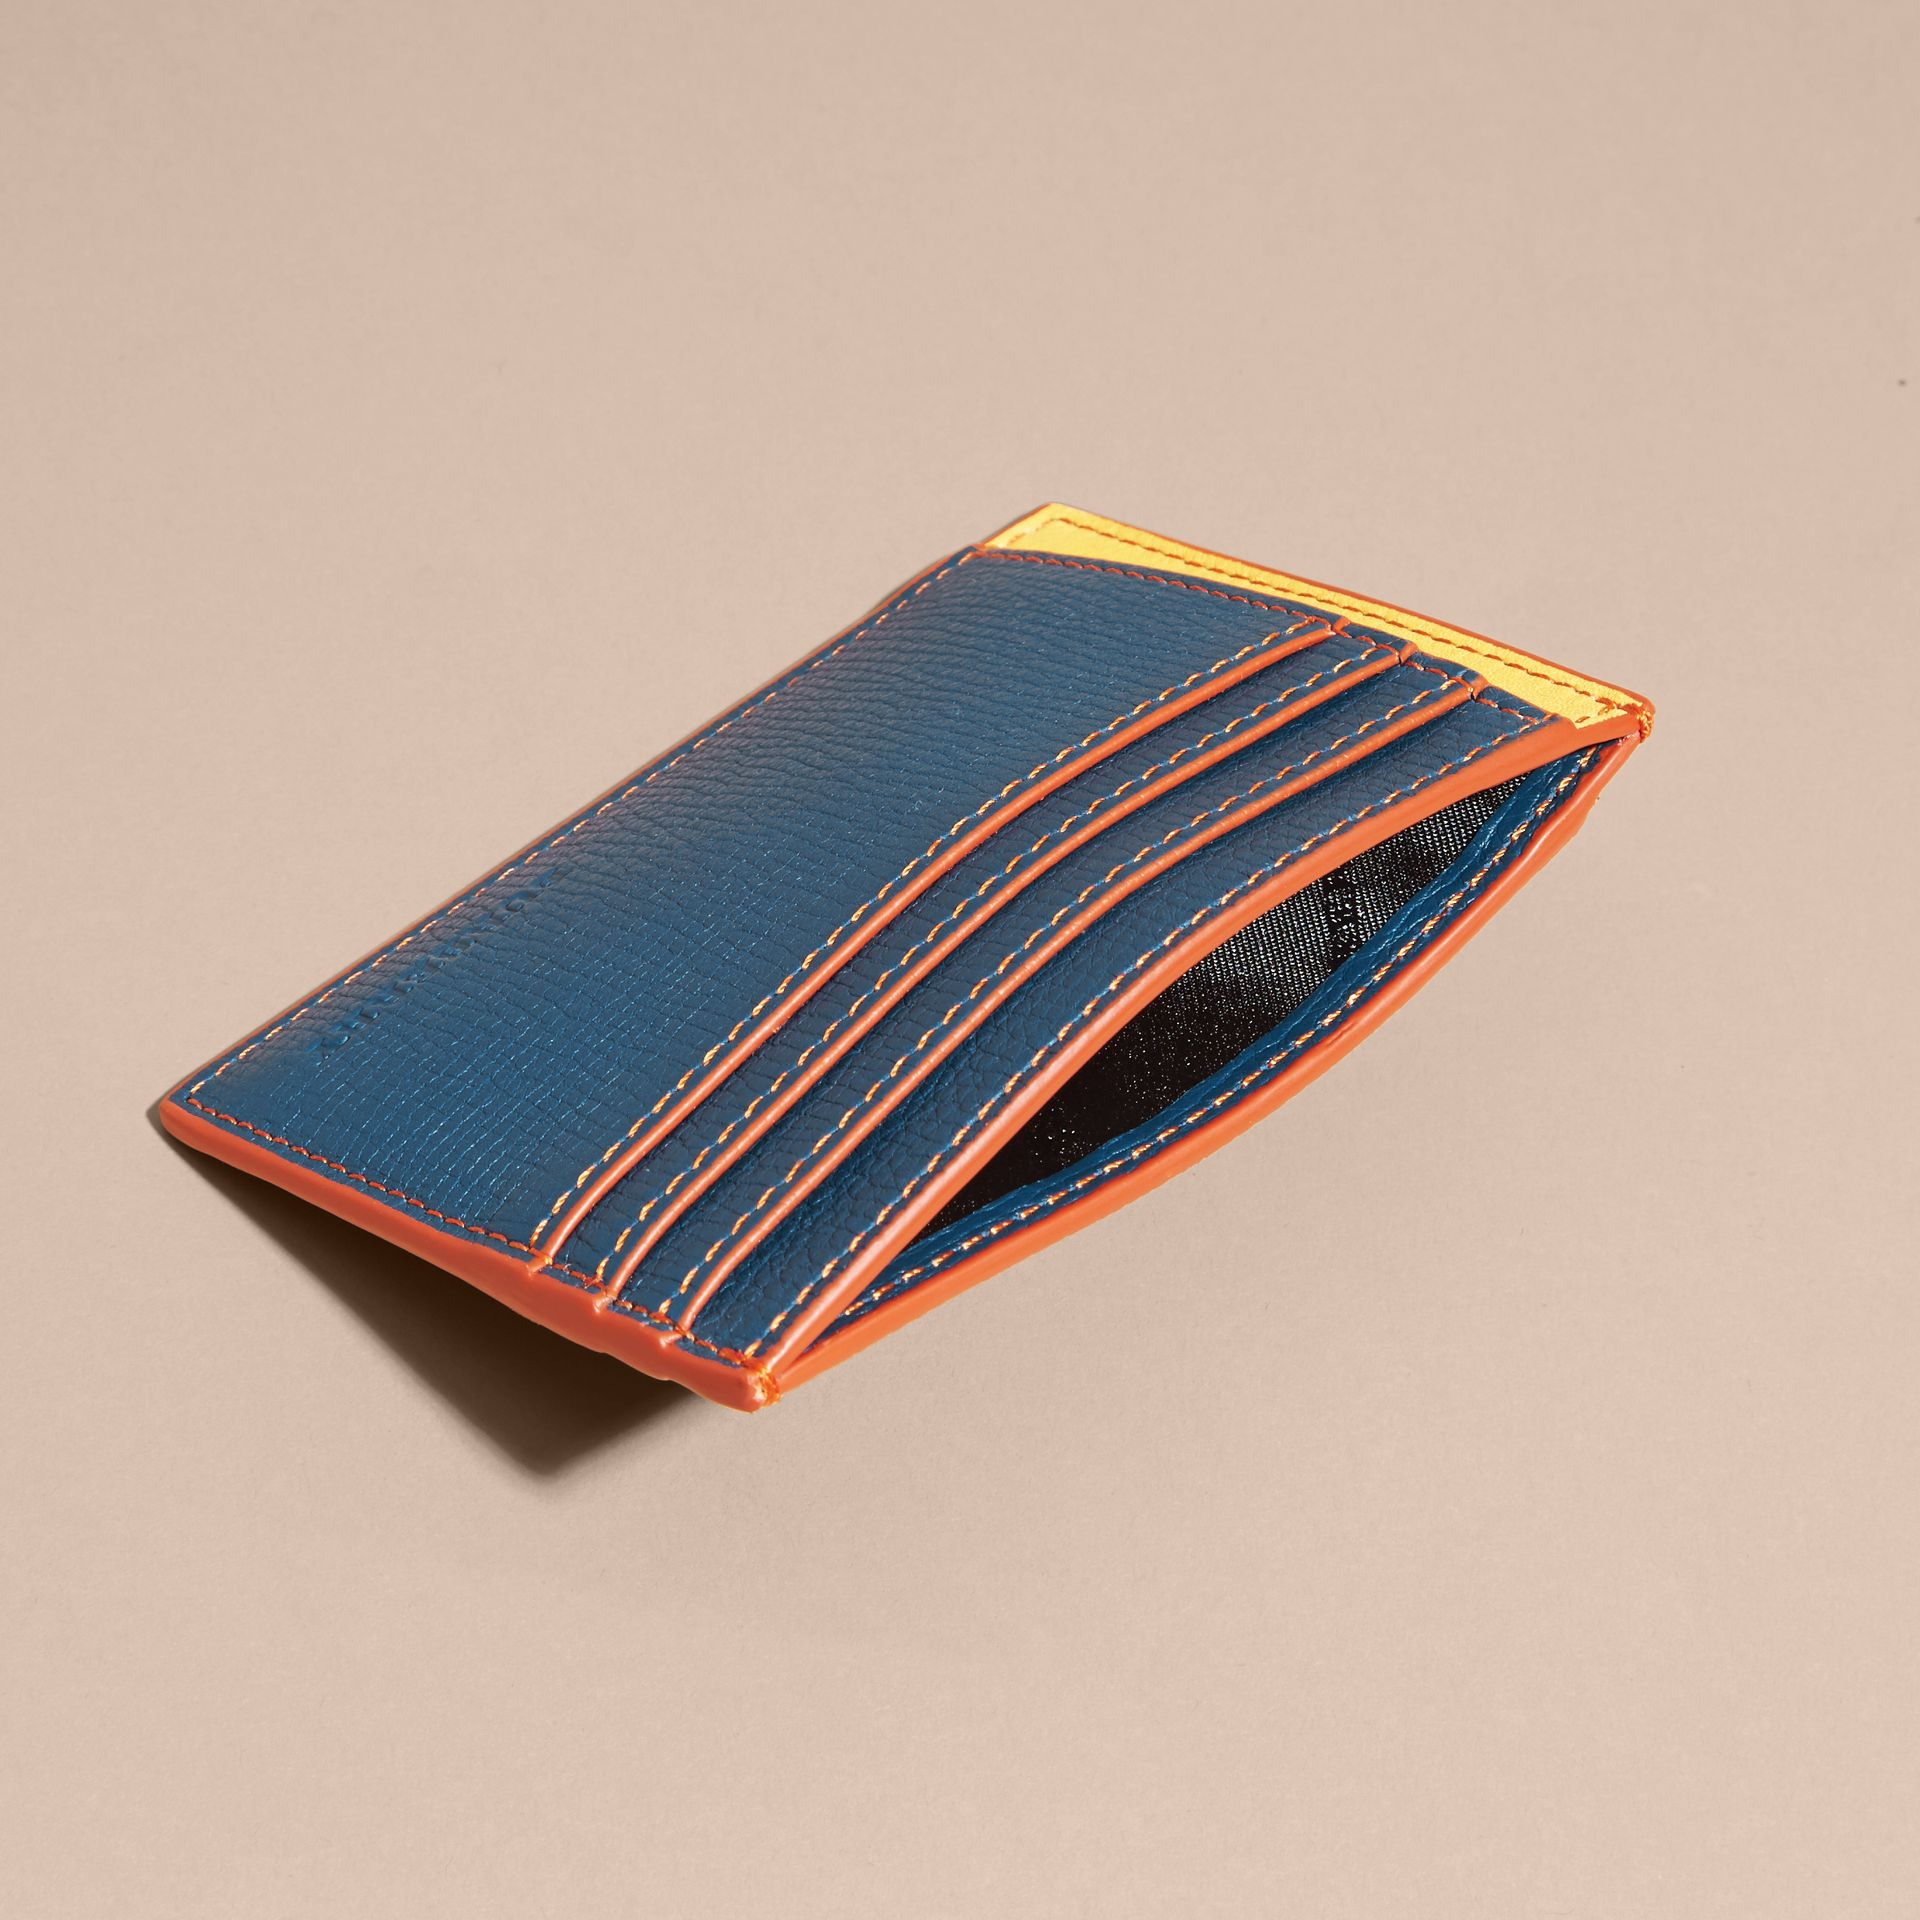 Colour Block Leather Card Case in Marine Blue - gallery image 5